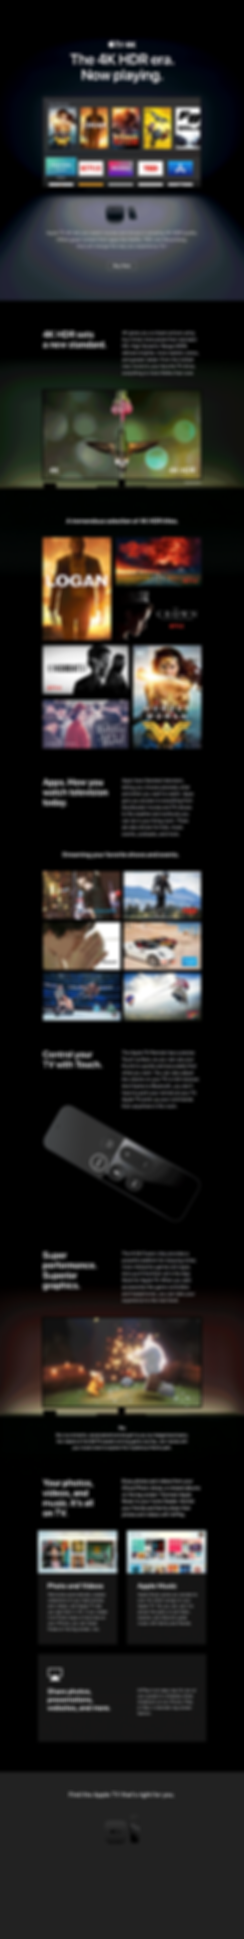 ROSA_AppleTV4K_SHARED_PRODUCT-PAGE_STD_2